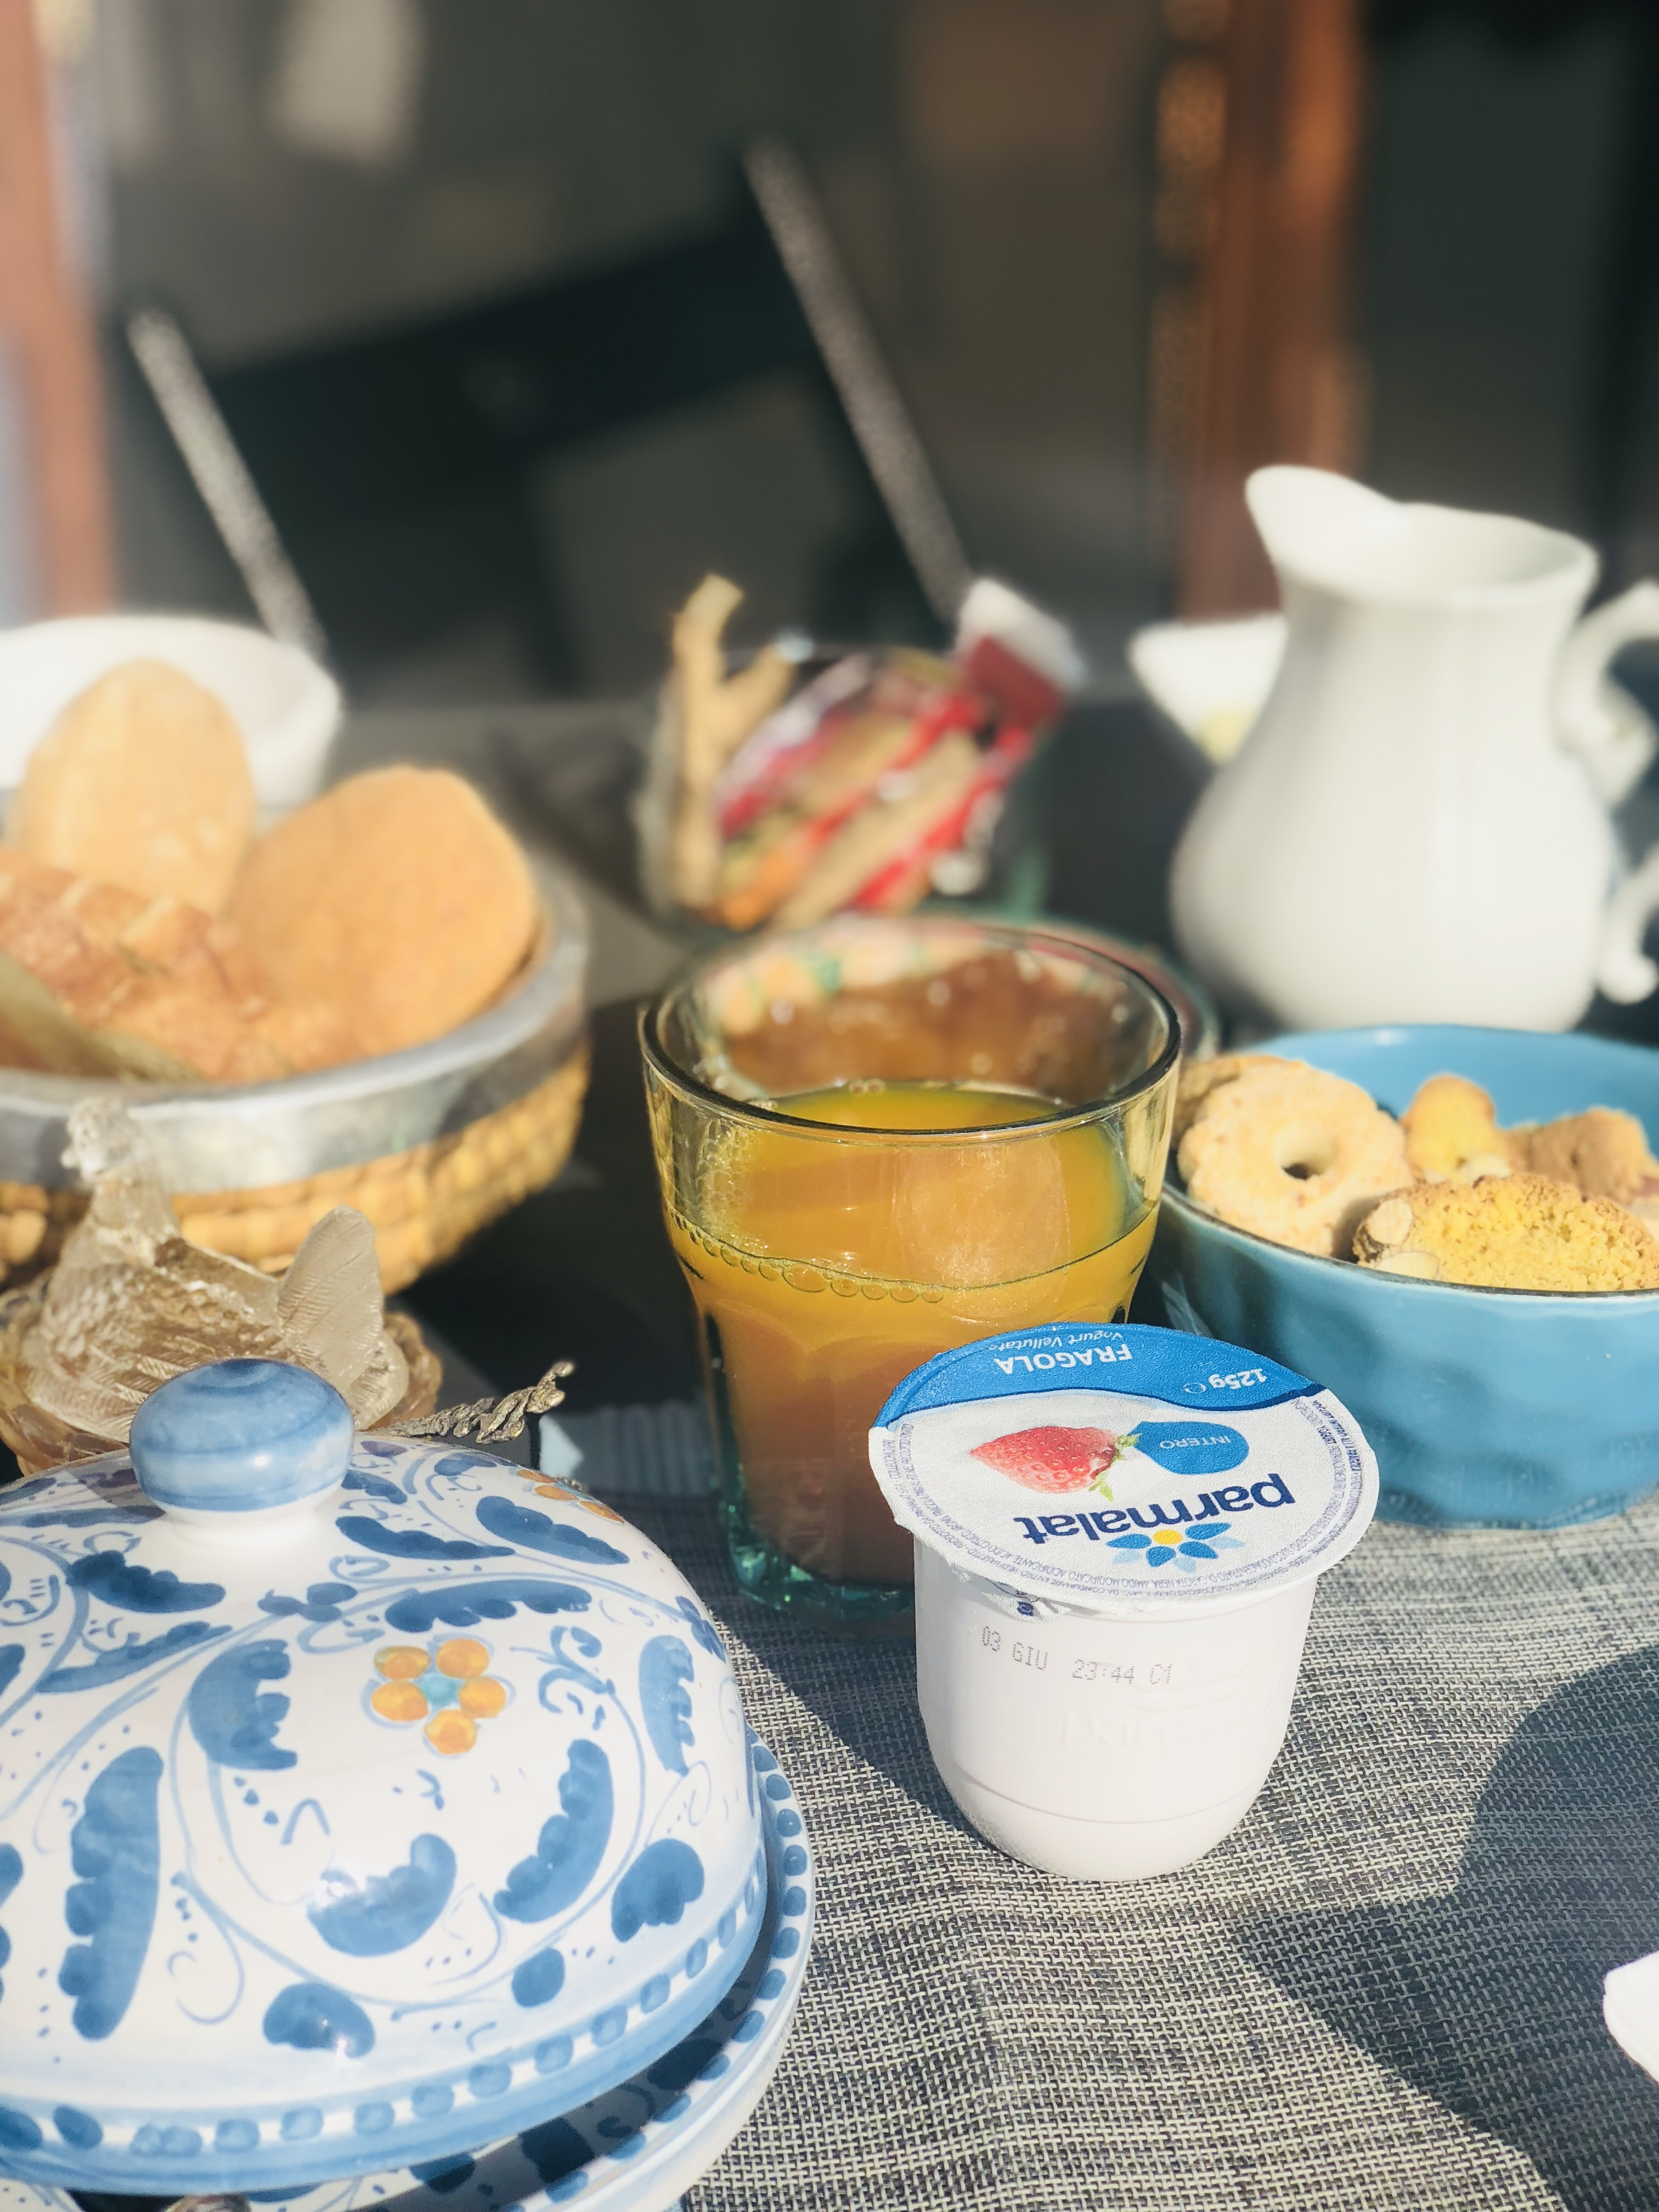 cookies near orange juice and Parmalat container